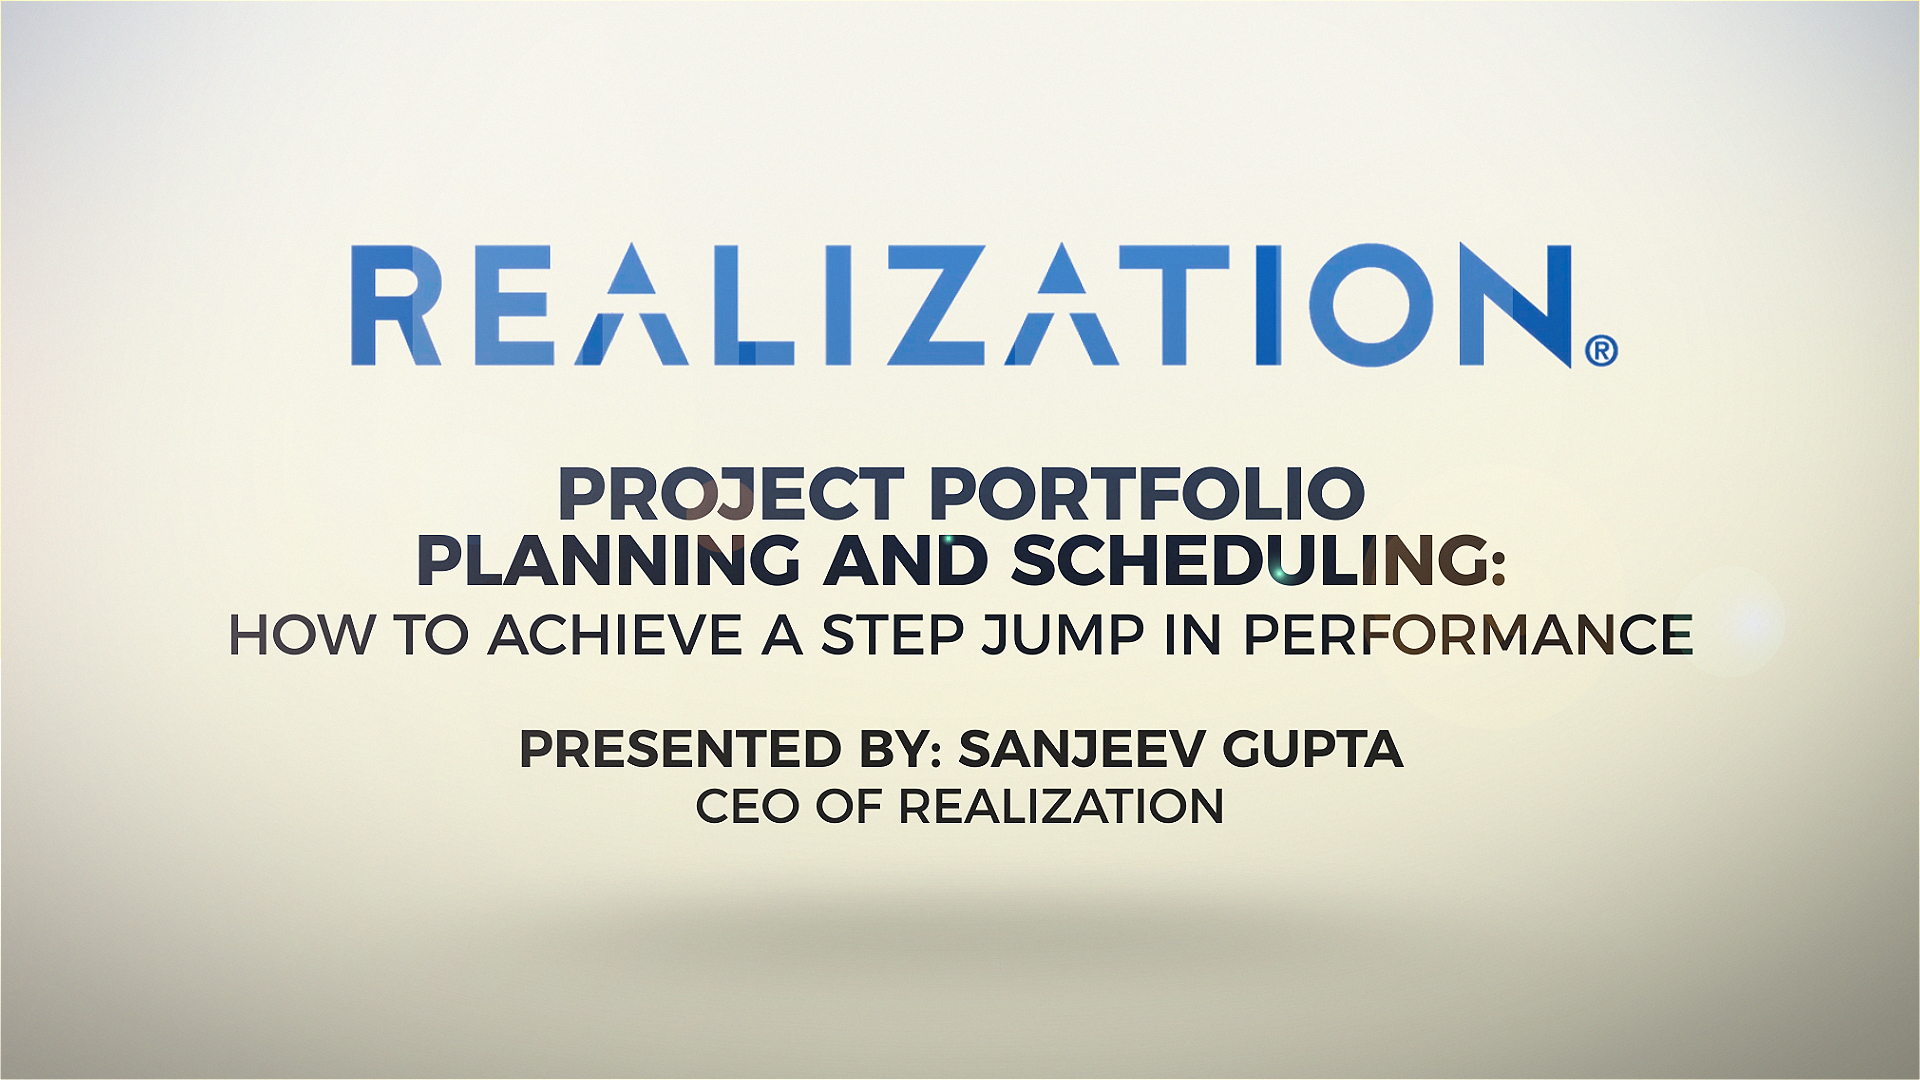 [Webinar] Project Portfolio Planning and Scheduling:How to Achieve a Step Jump in Performance Part 1